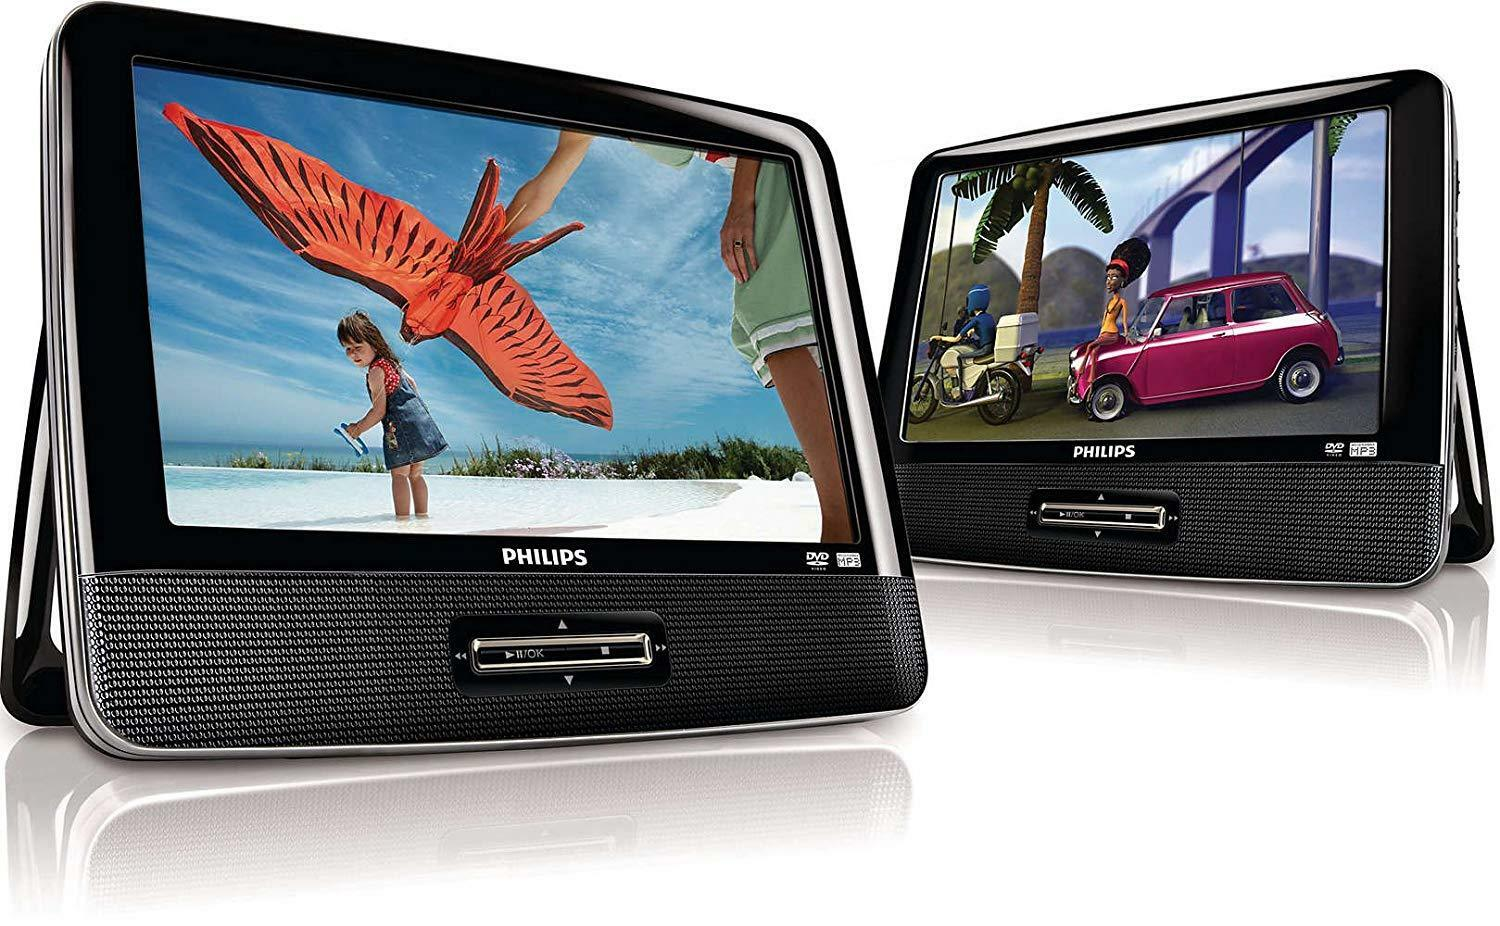 Philips PD9016/37 9-inch Portable LCD Dual DVD player